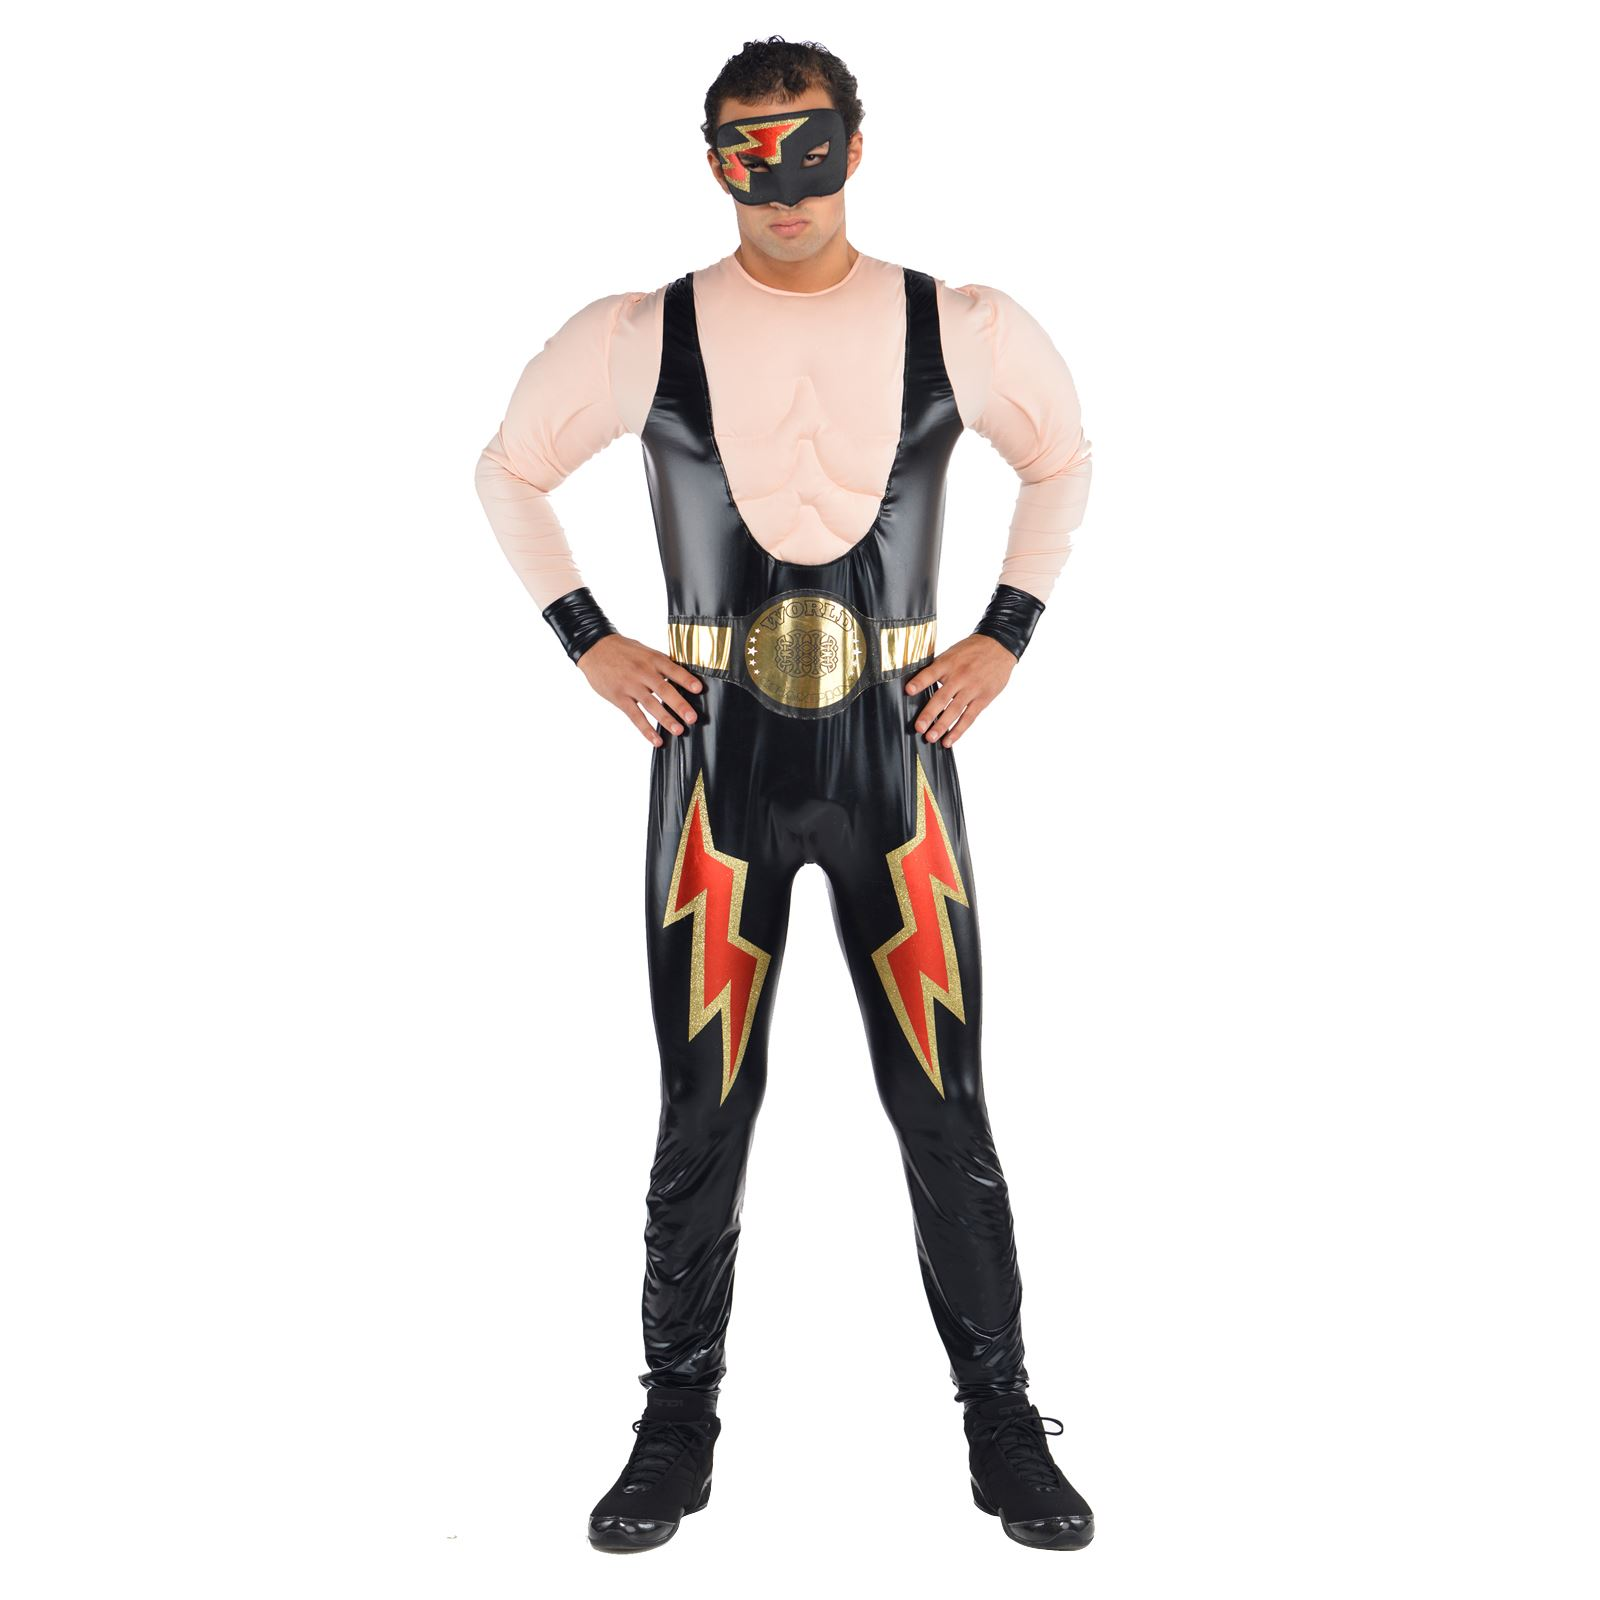 Wwe Wrestler Mens Fancy Dress Wrestling Party Adult Deluxe Jumpsuit